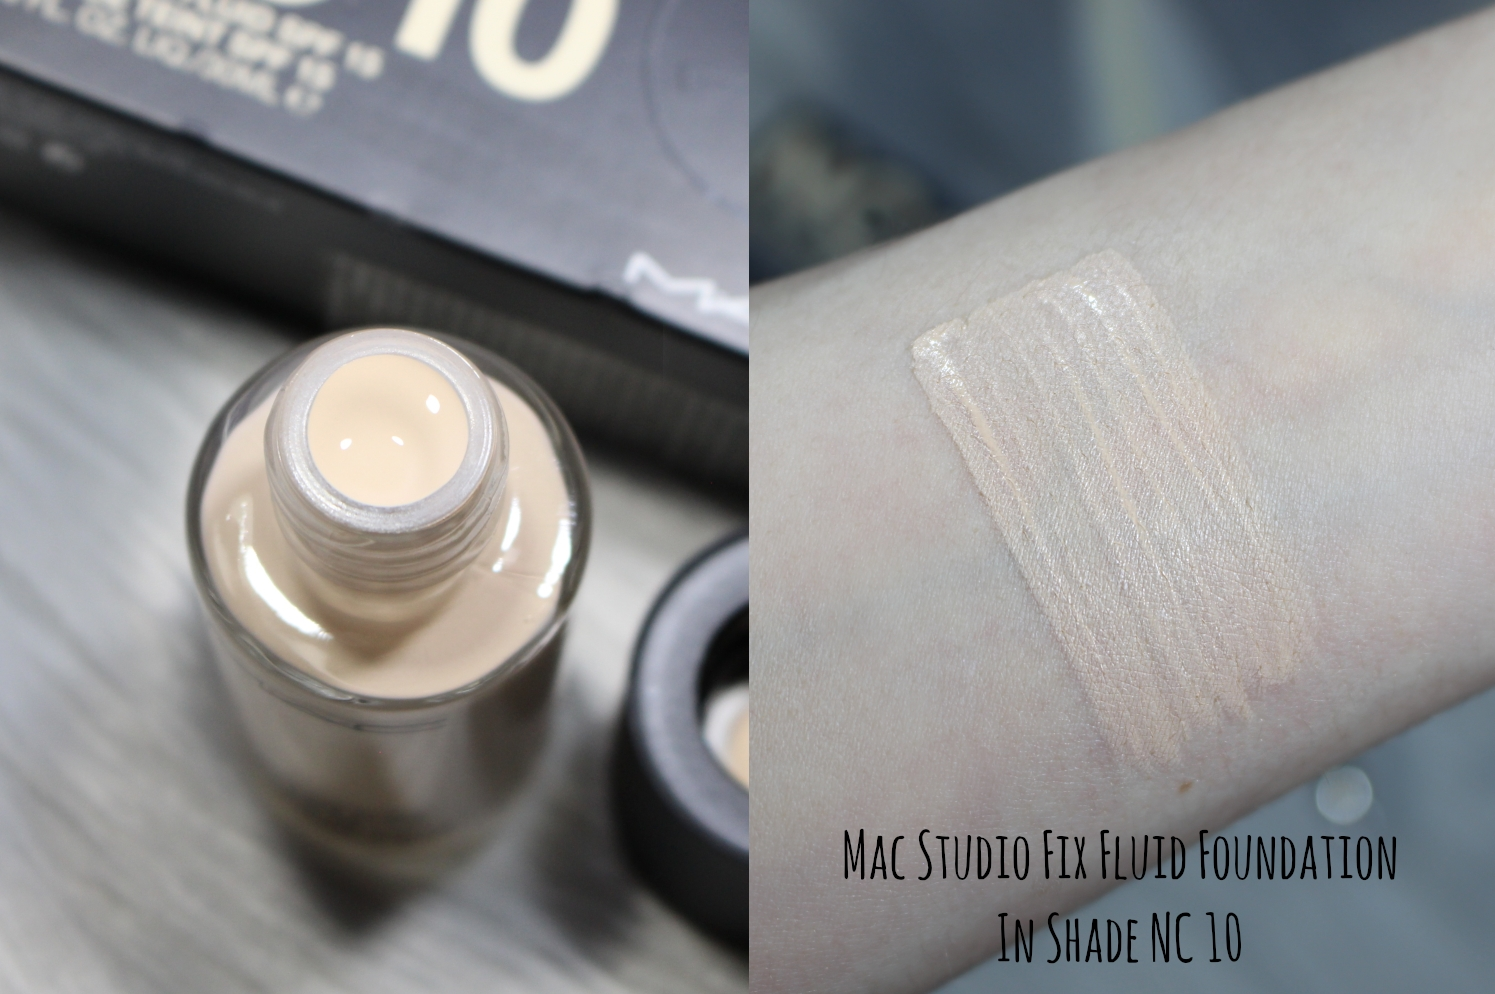 Mac Cosmetics Studio Fix Fluid Foundation In Shade NC 10 swatch on a hand